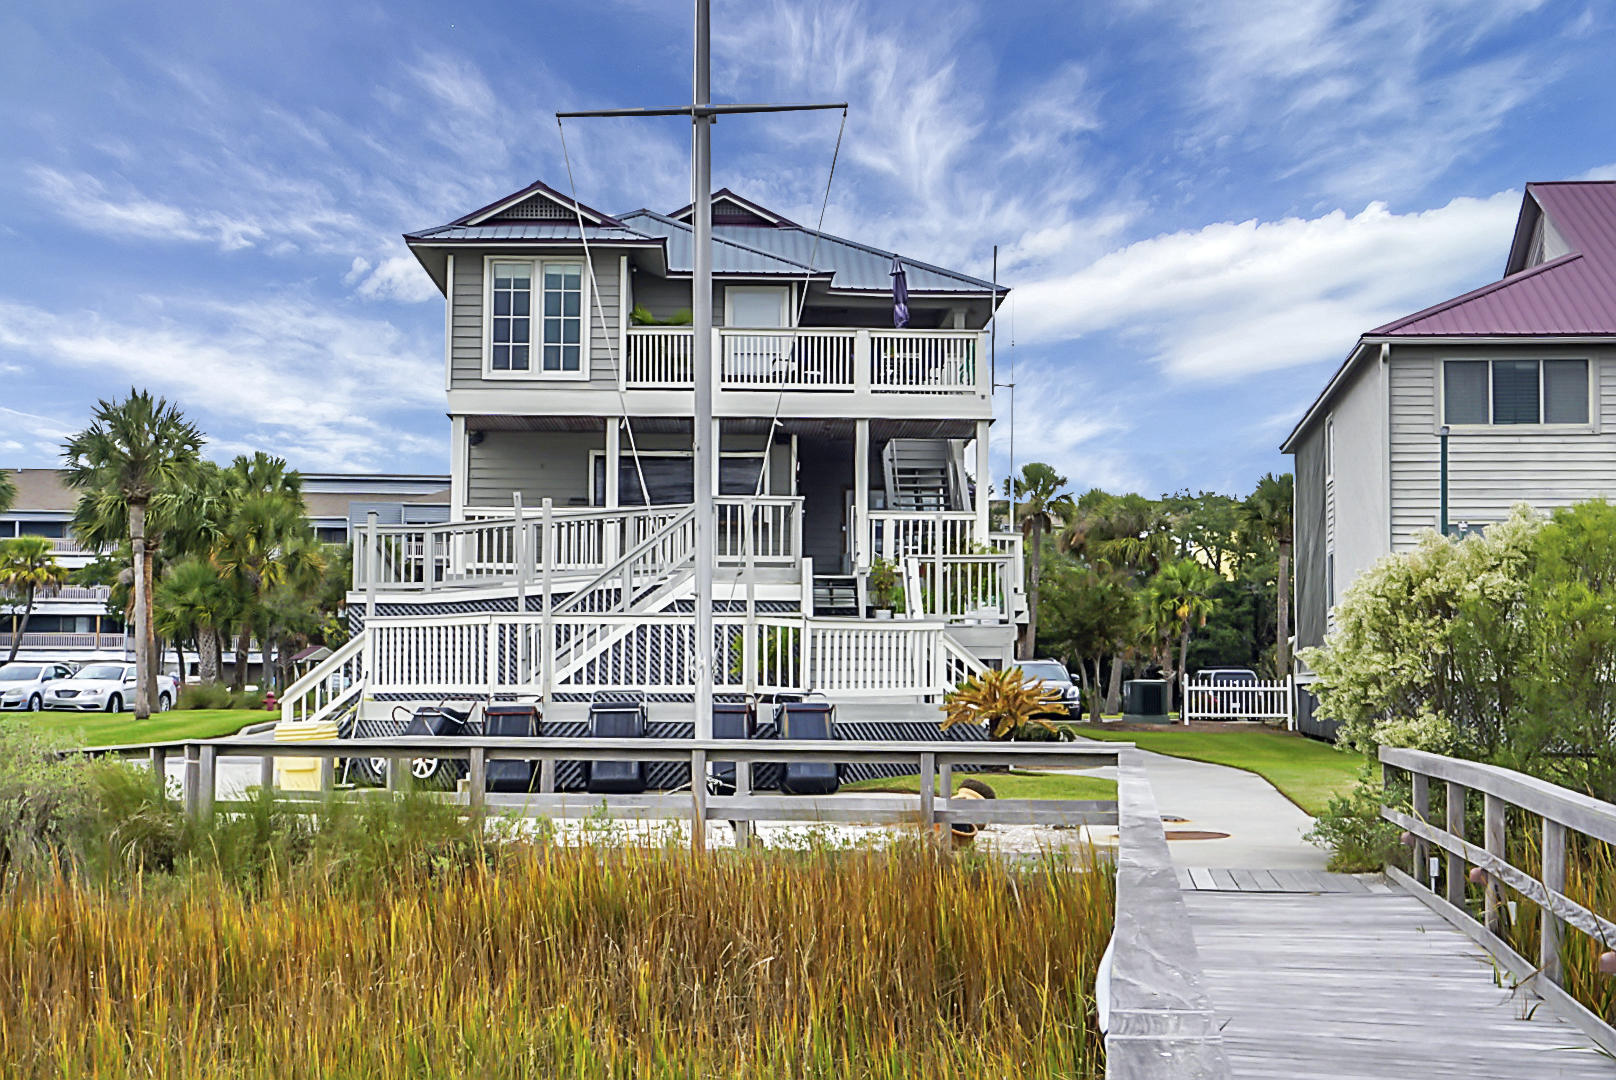 Mariners Cay Homes For Sale - 45 Mariners Cay, Folly Beach, SC - 77